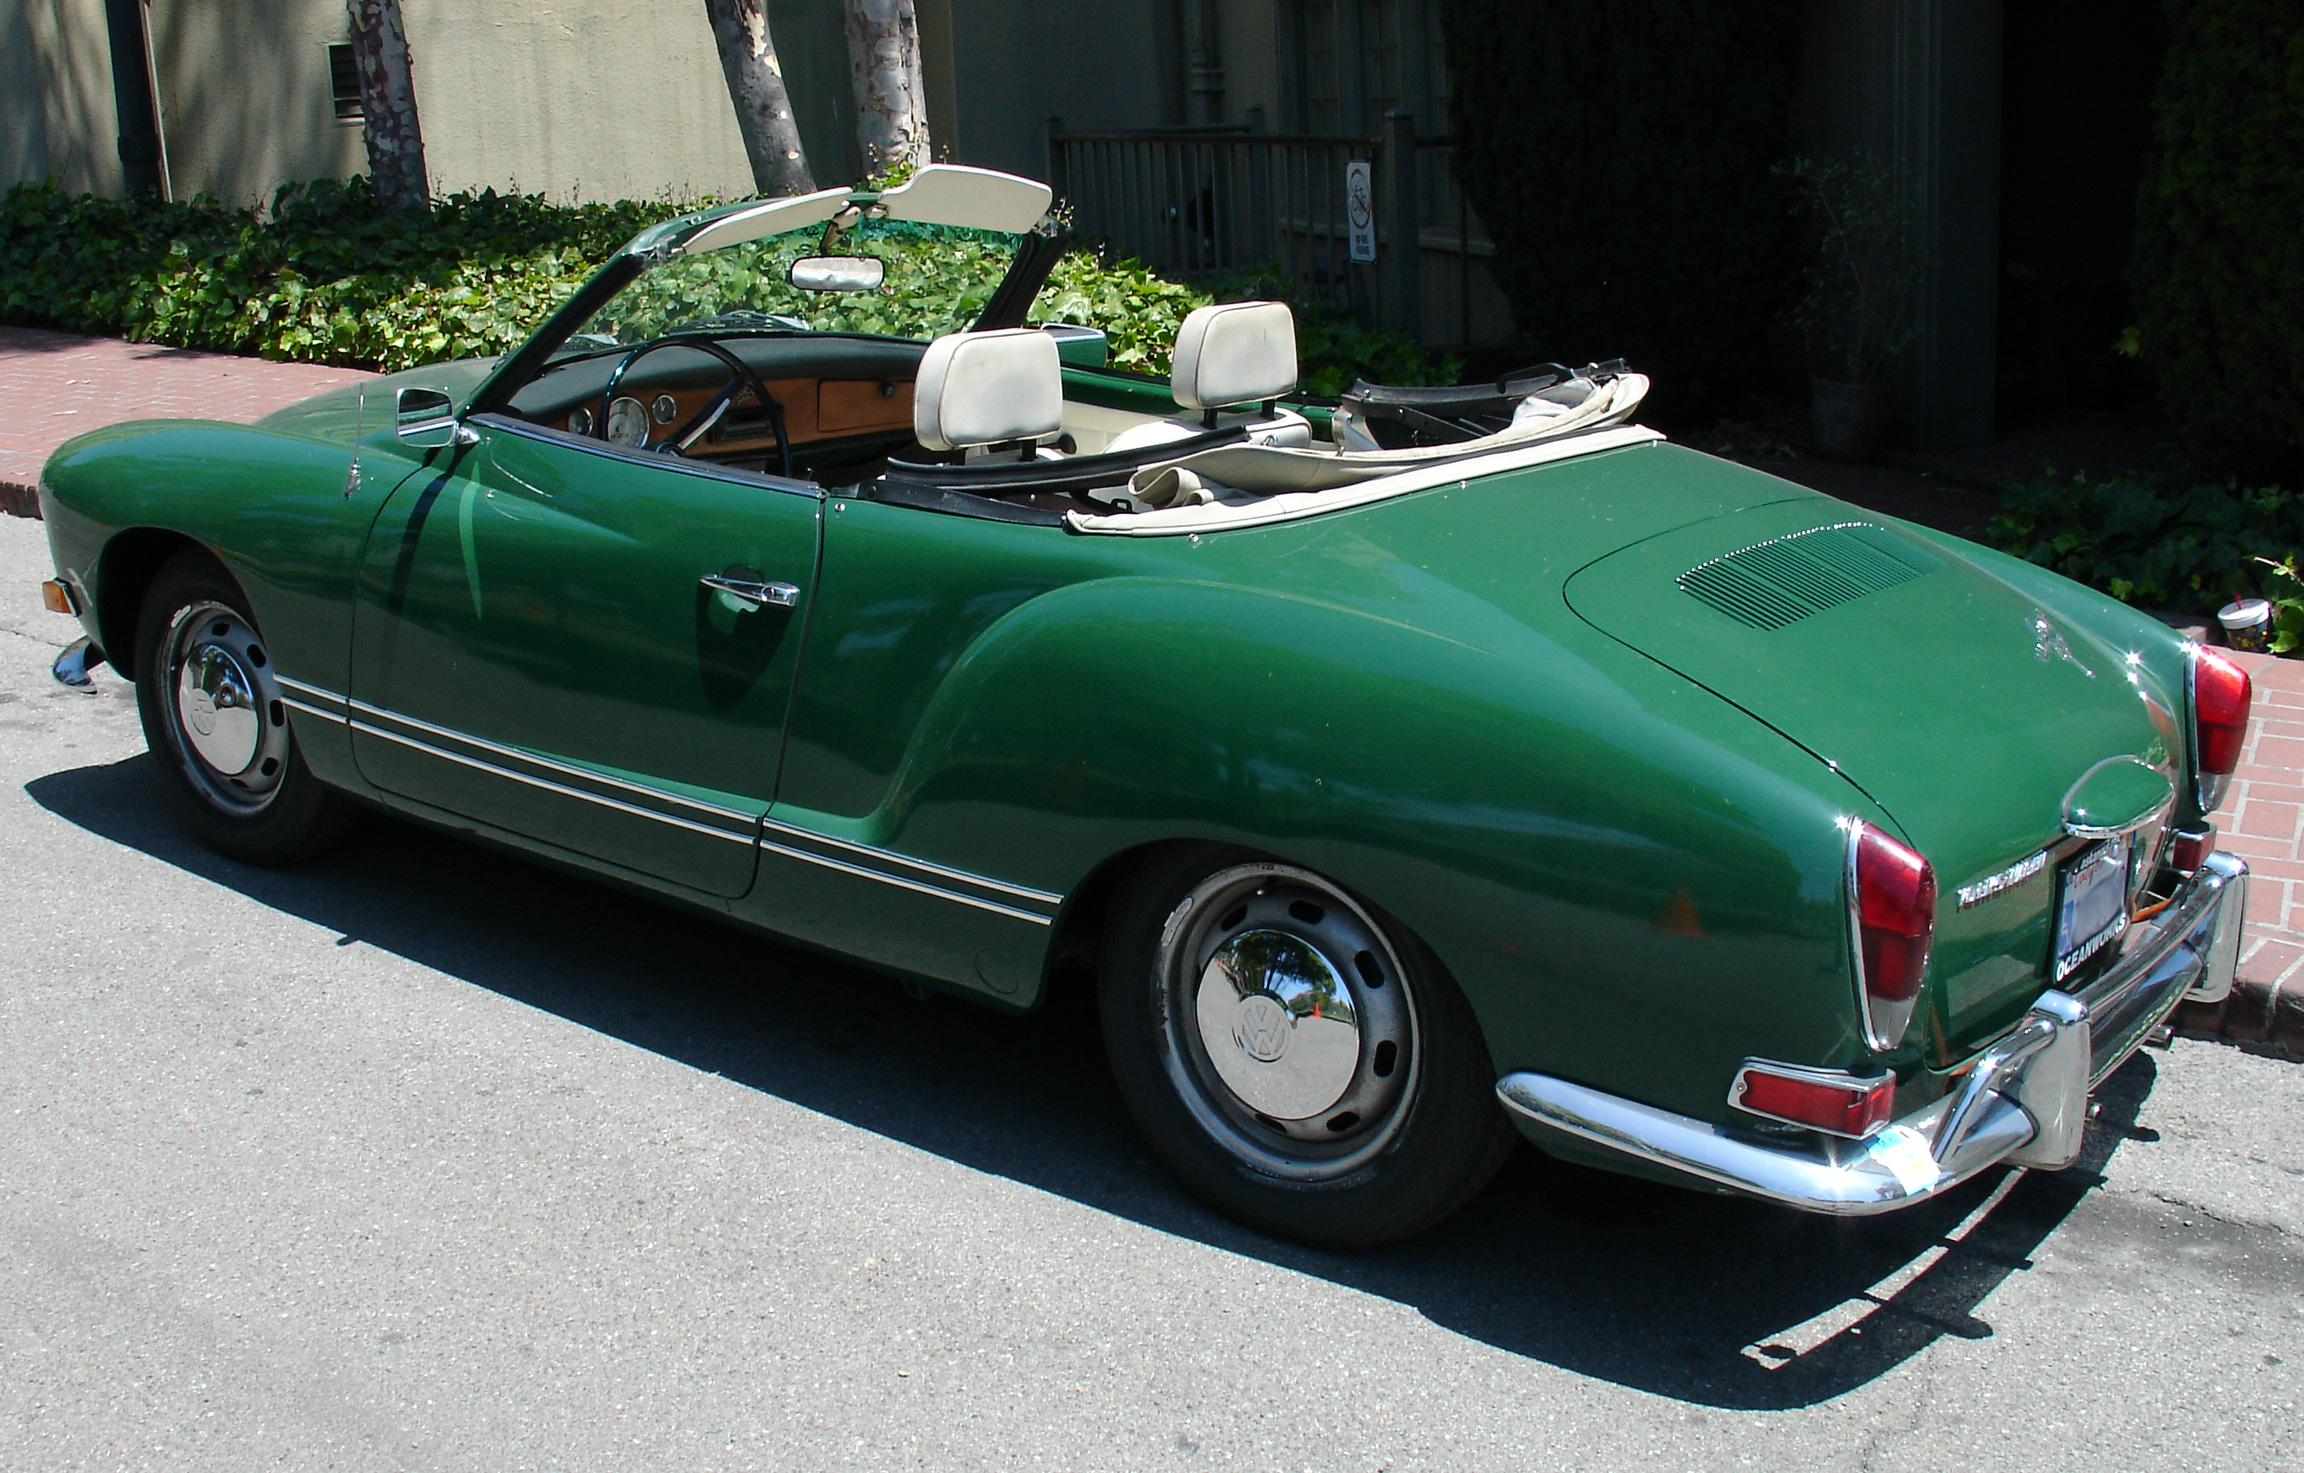 Vroom! on Pinterest | Volkswagen Karmann Ghia, Volkswagen ...